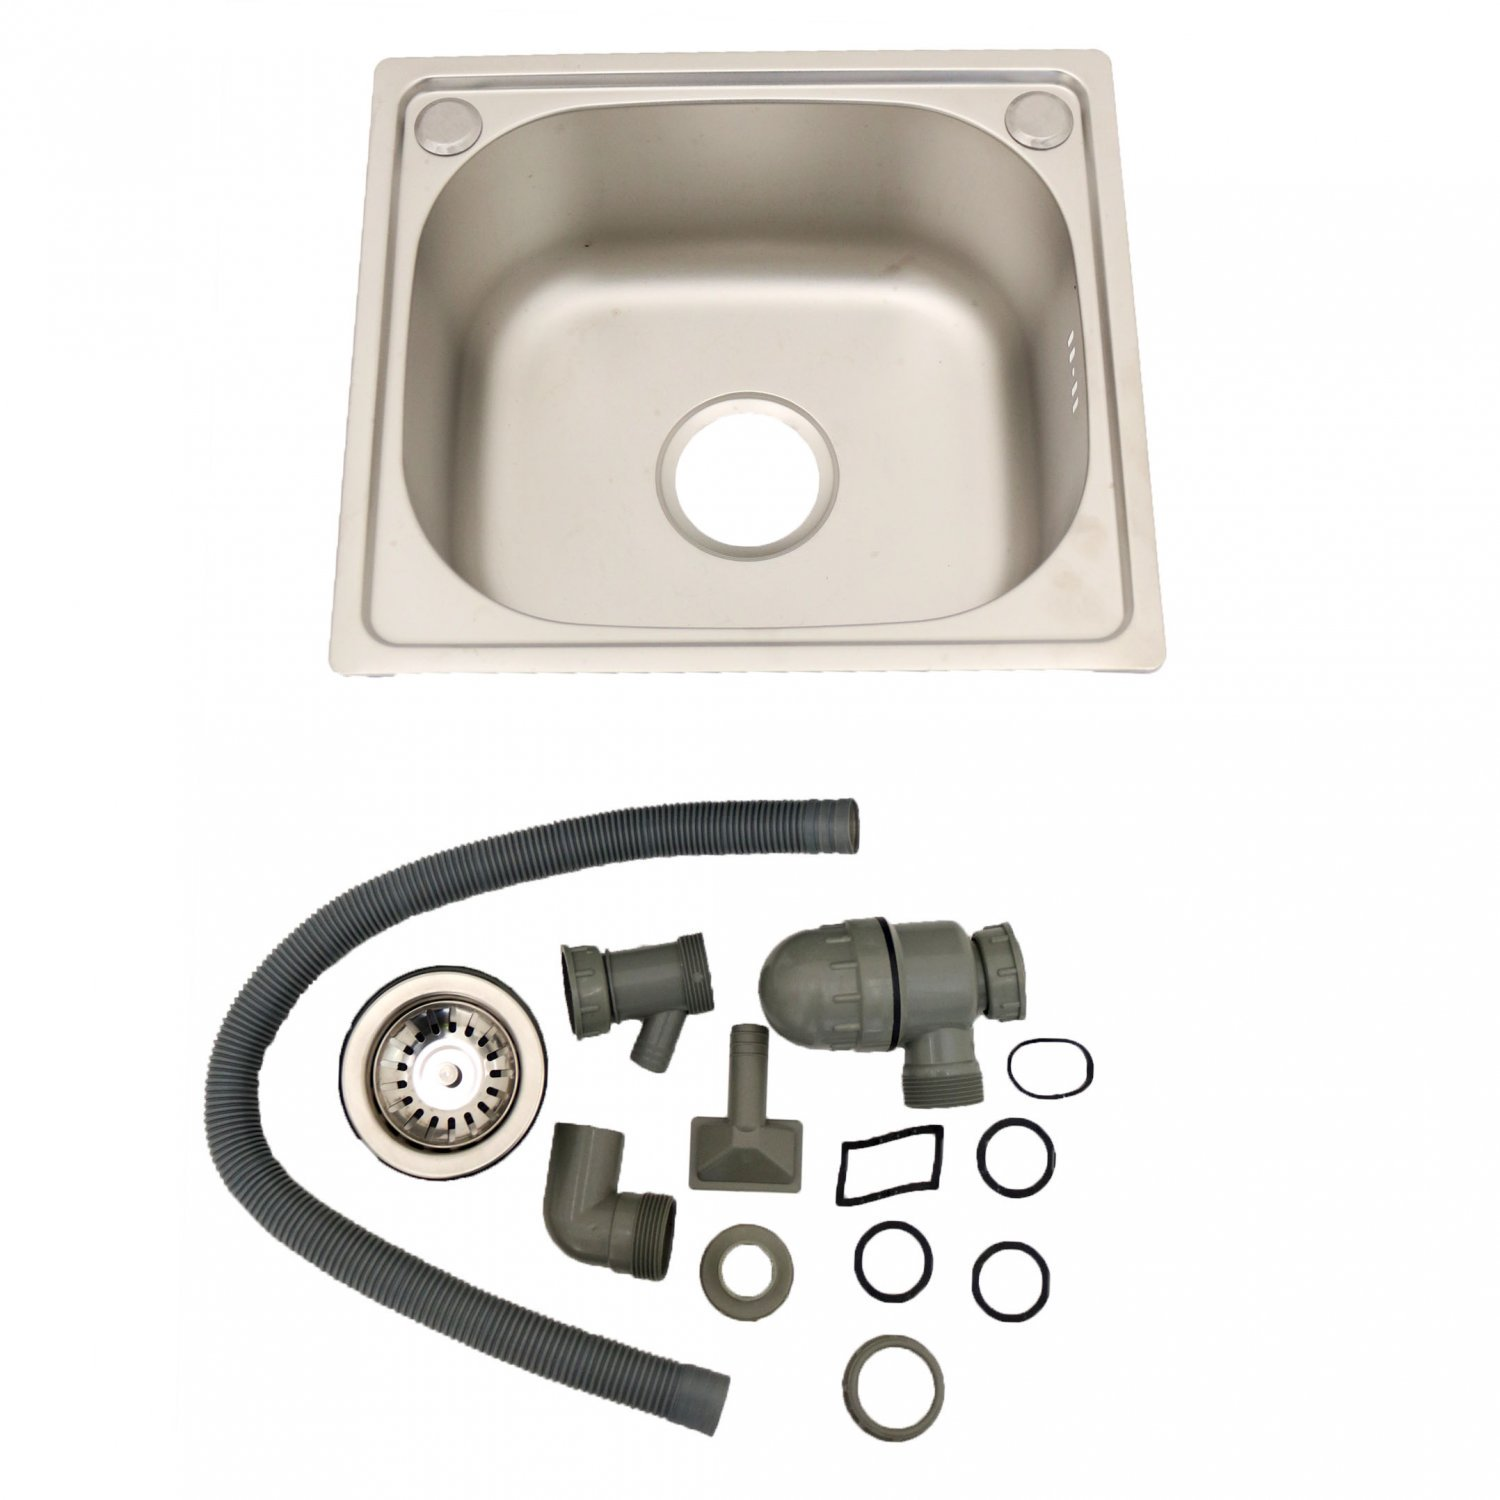 Brushed Stainless Steel Top Mount Kitchen Bowl Sink w/ Plumbing